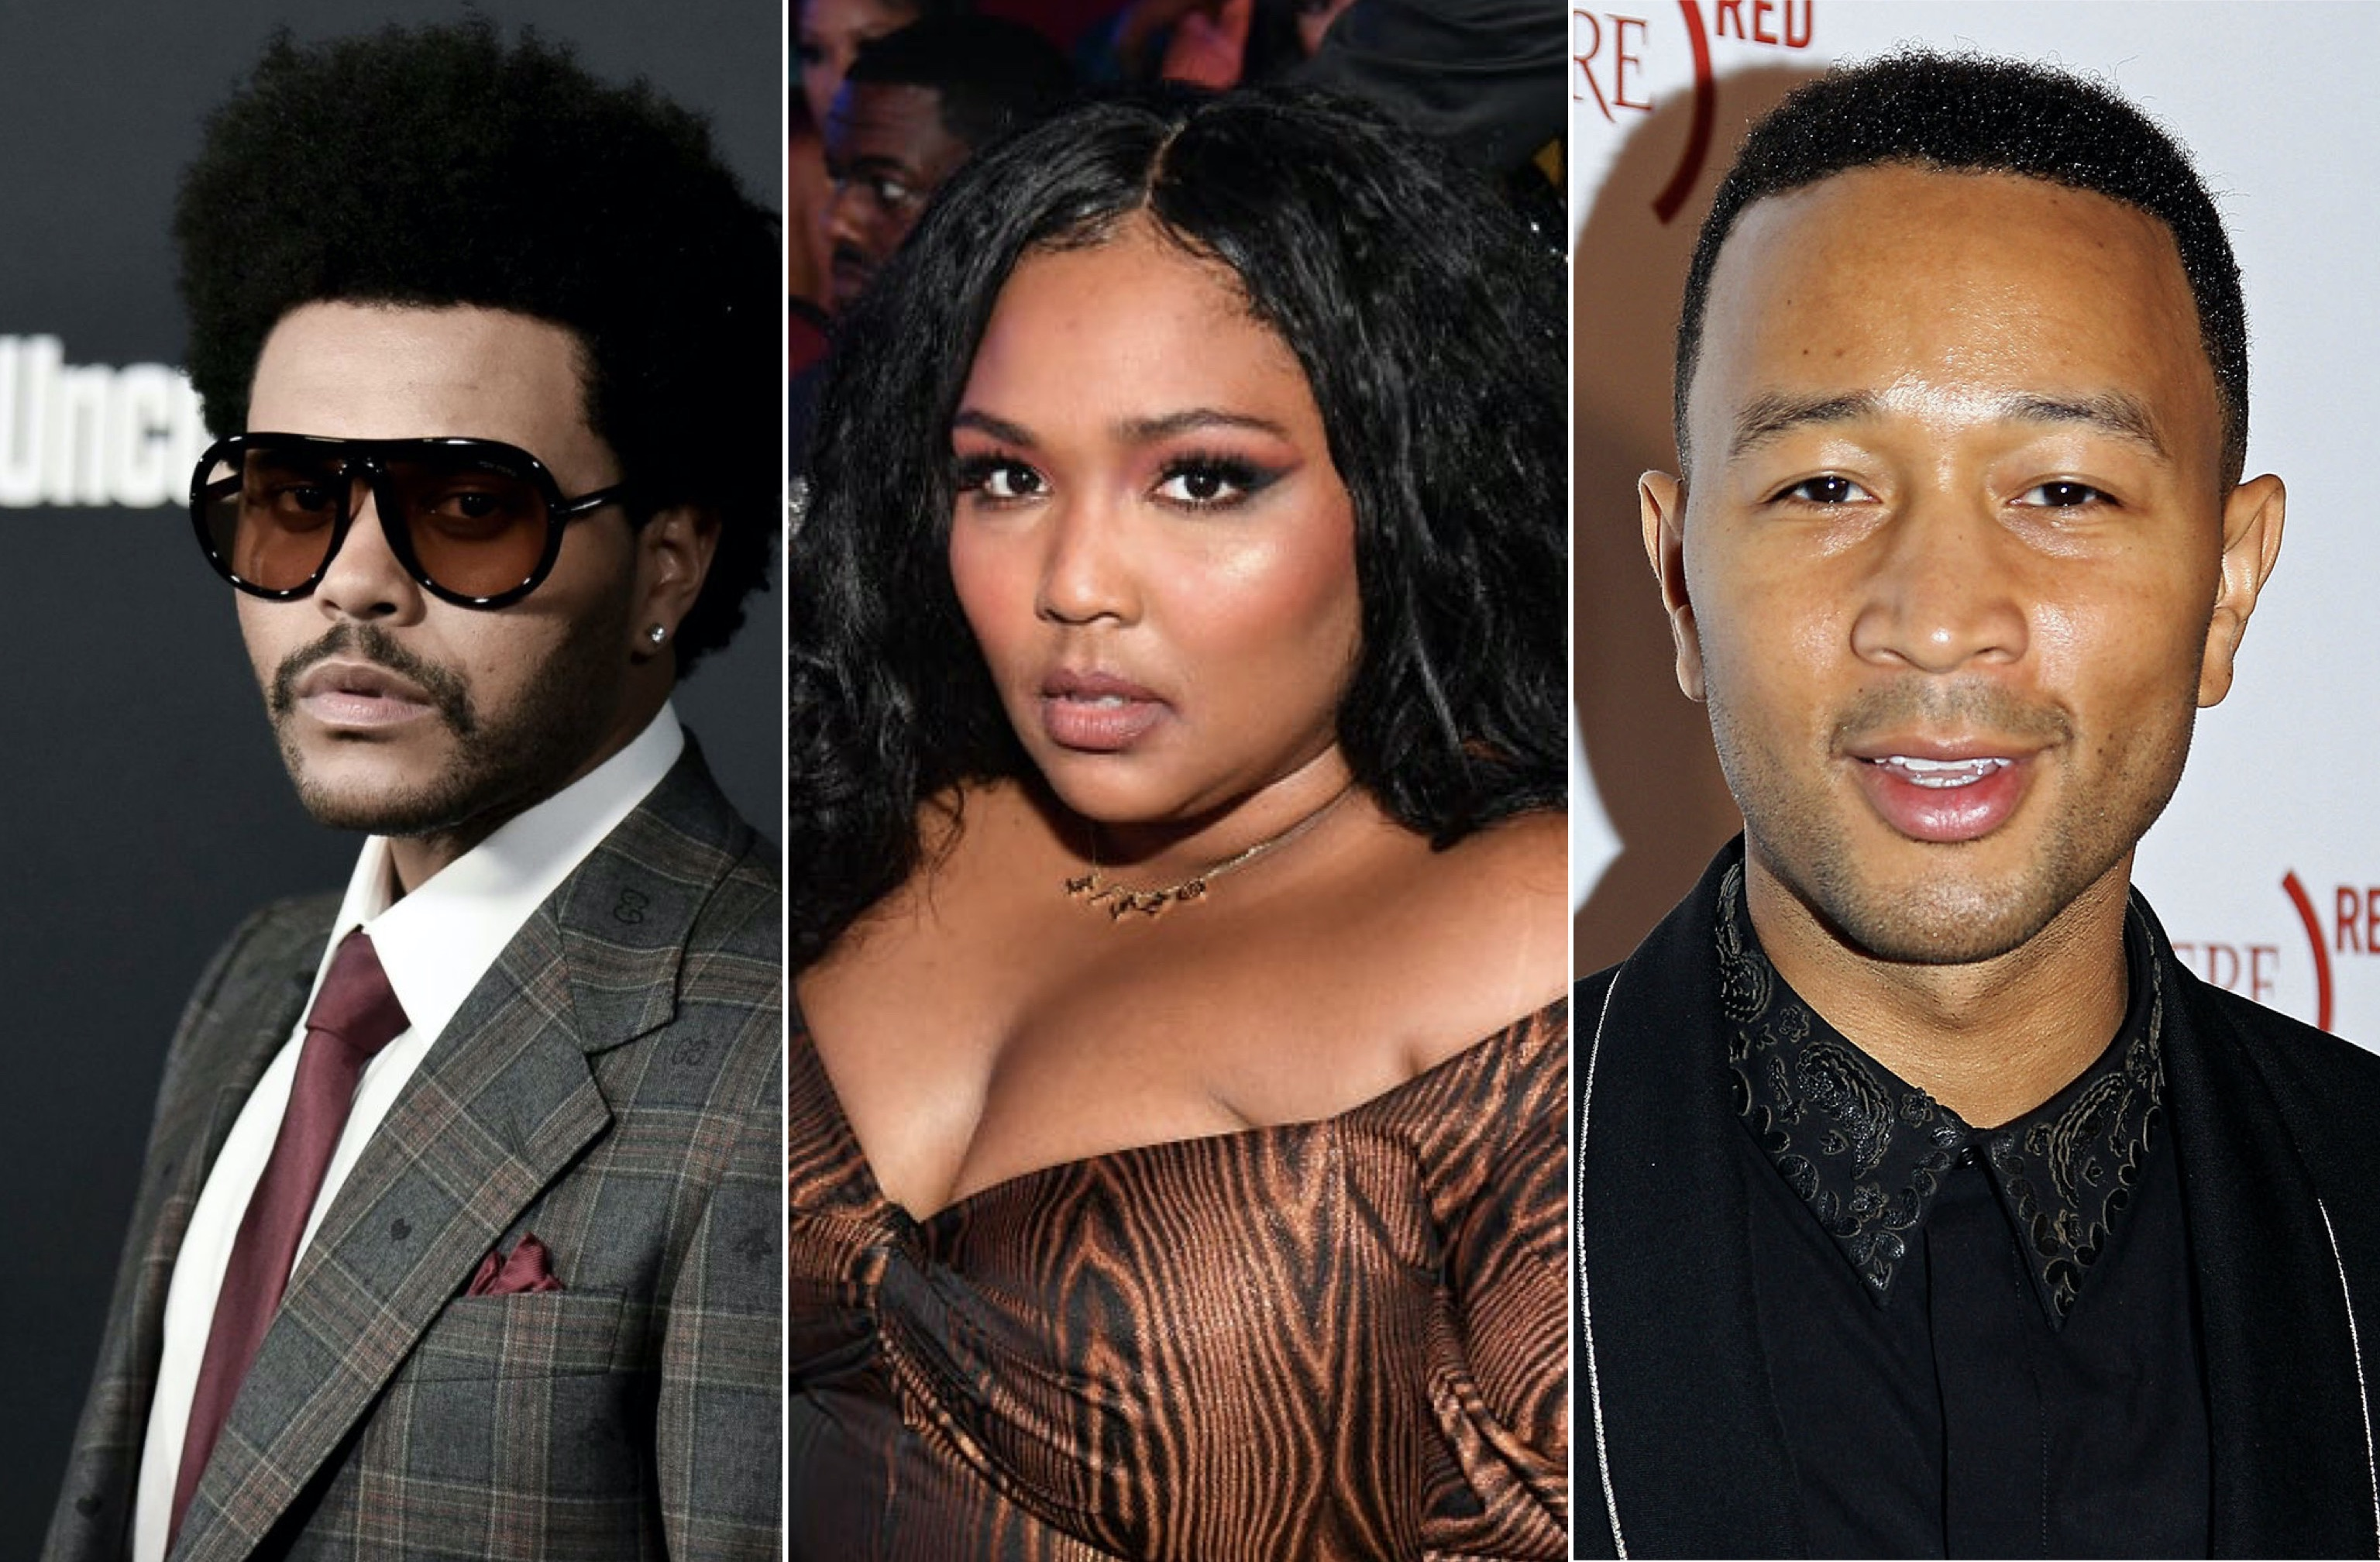 The Weeknd, Lizzo, and John Legend